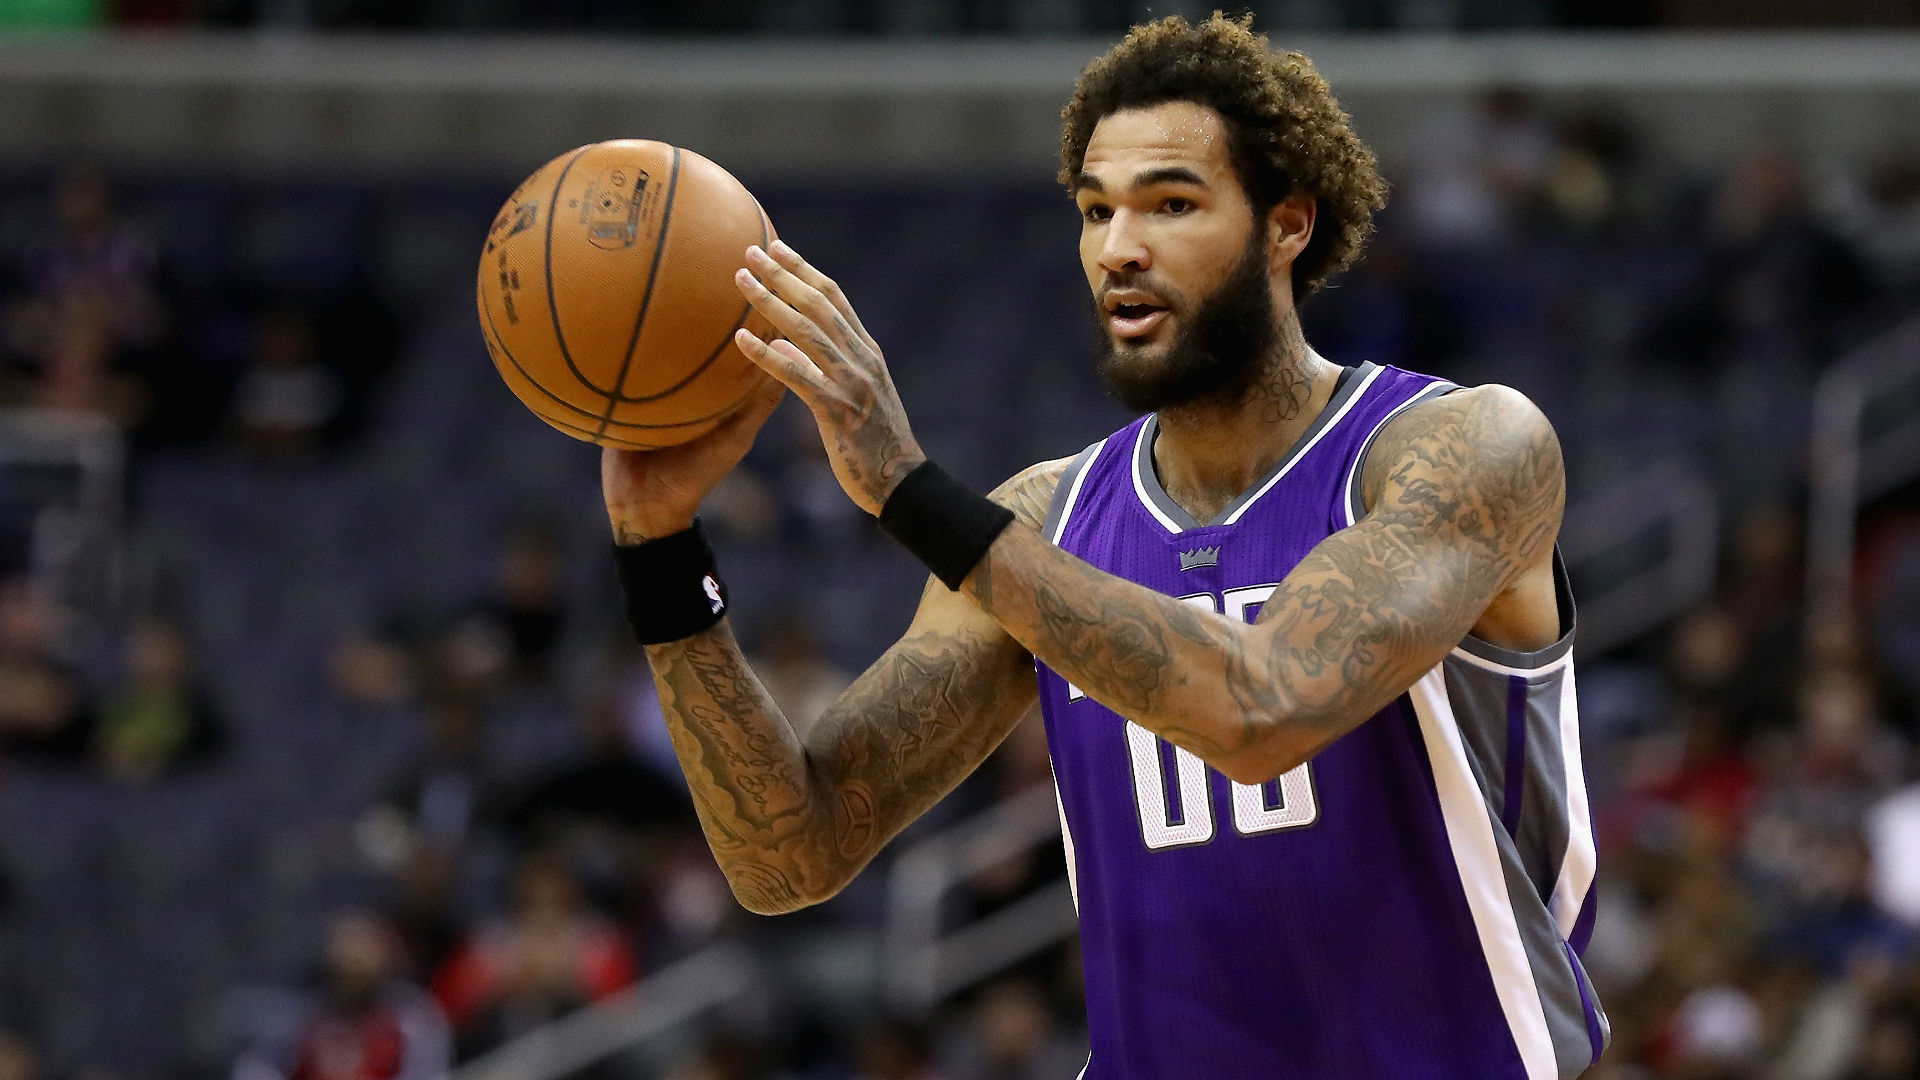 Kings' Vlade Divac: Willie Cauley-Stein still needs to show he can be consistent